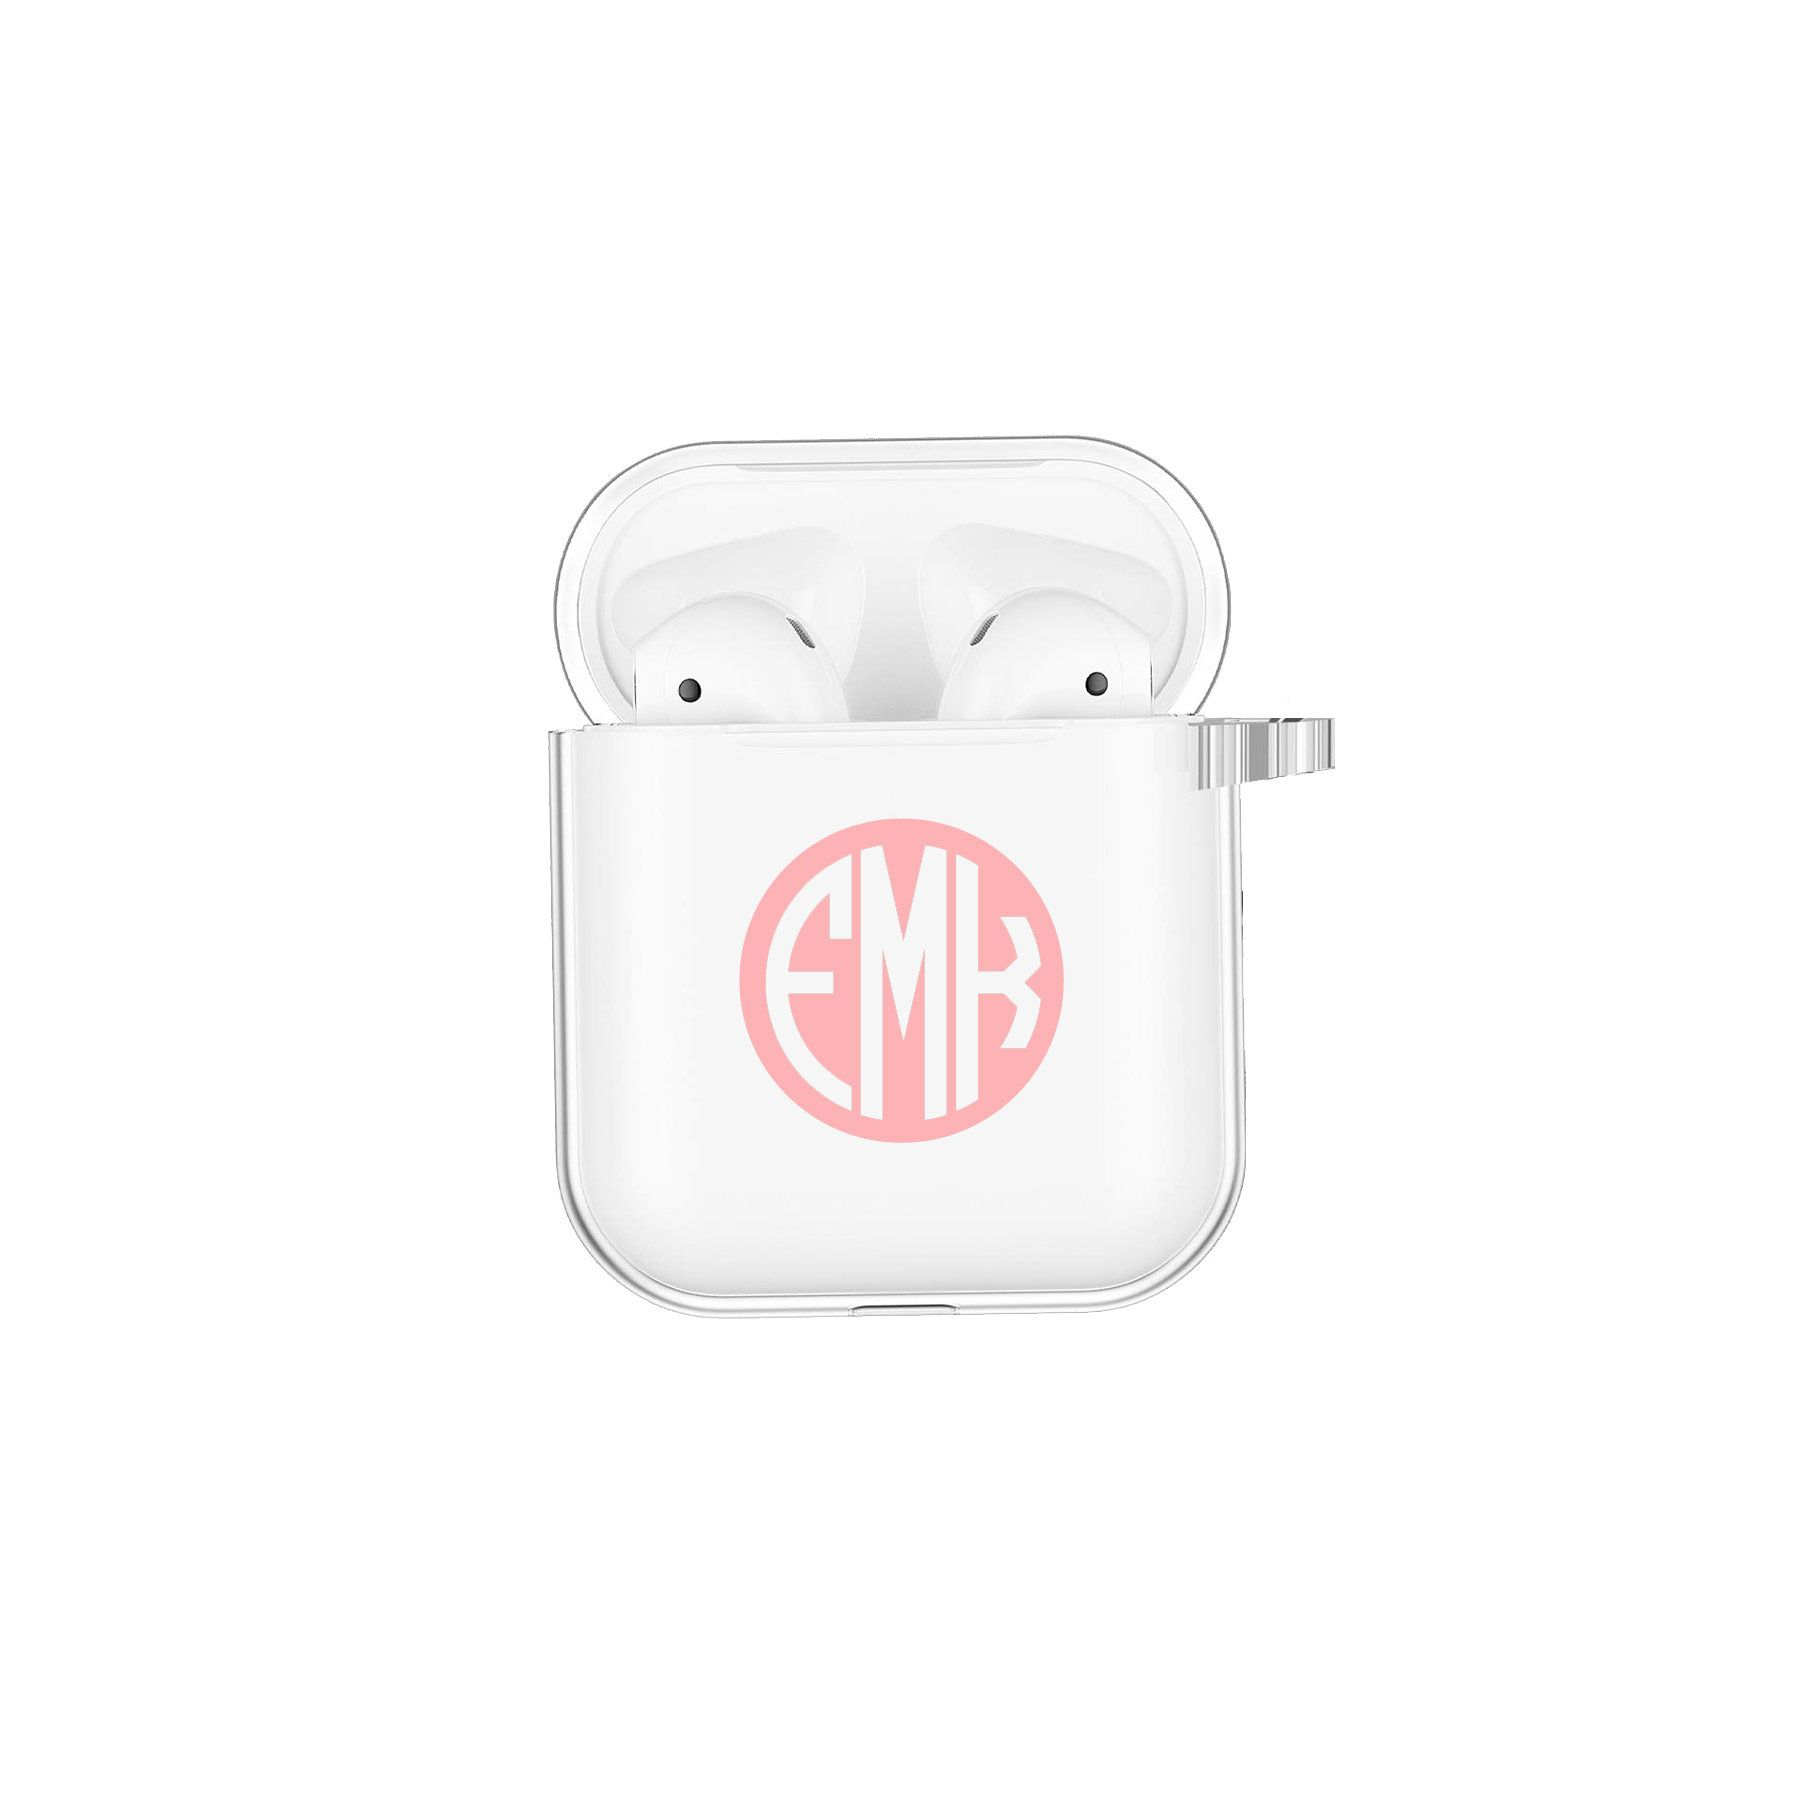 Customized Name Airpod Case Airpods Case Personalized Gift Etsy Airpod Case Custom Case Etsy Personalized Gifts